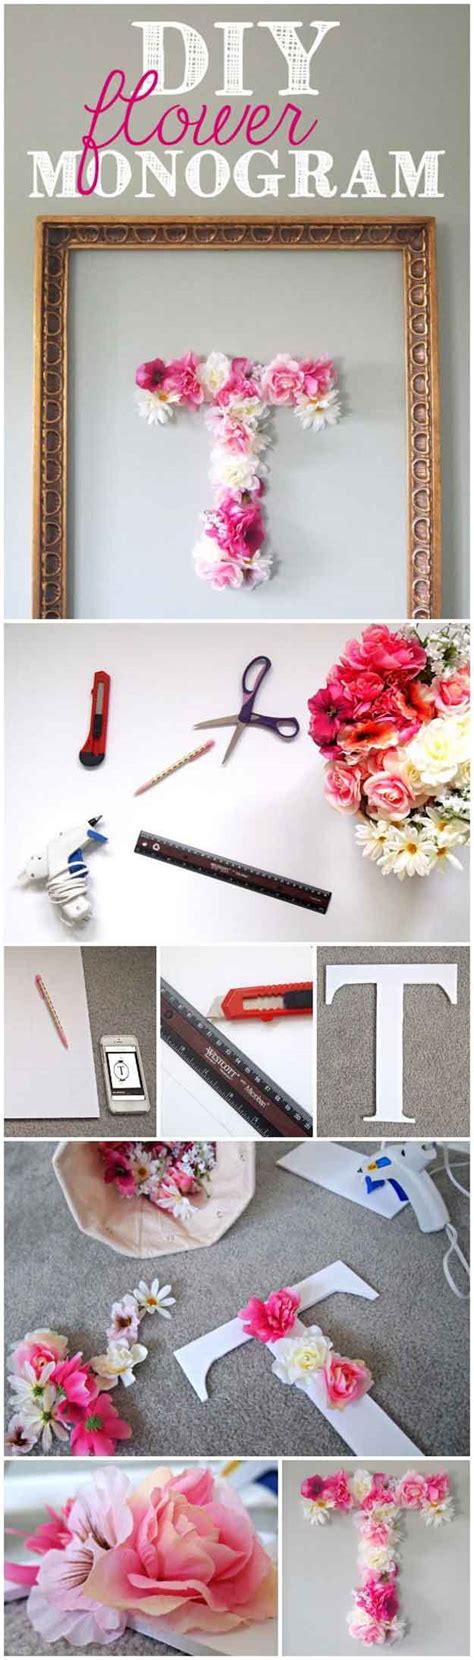 diy bedroom projects diy projects for bedroom diy ready